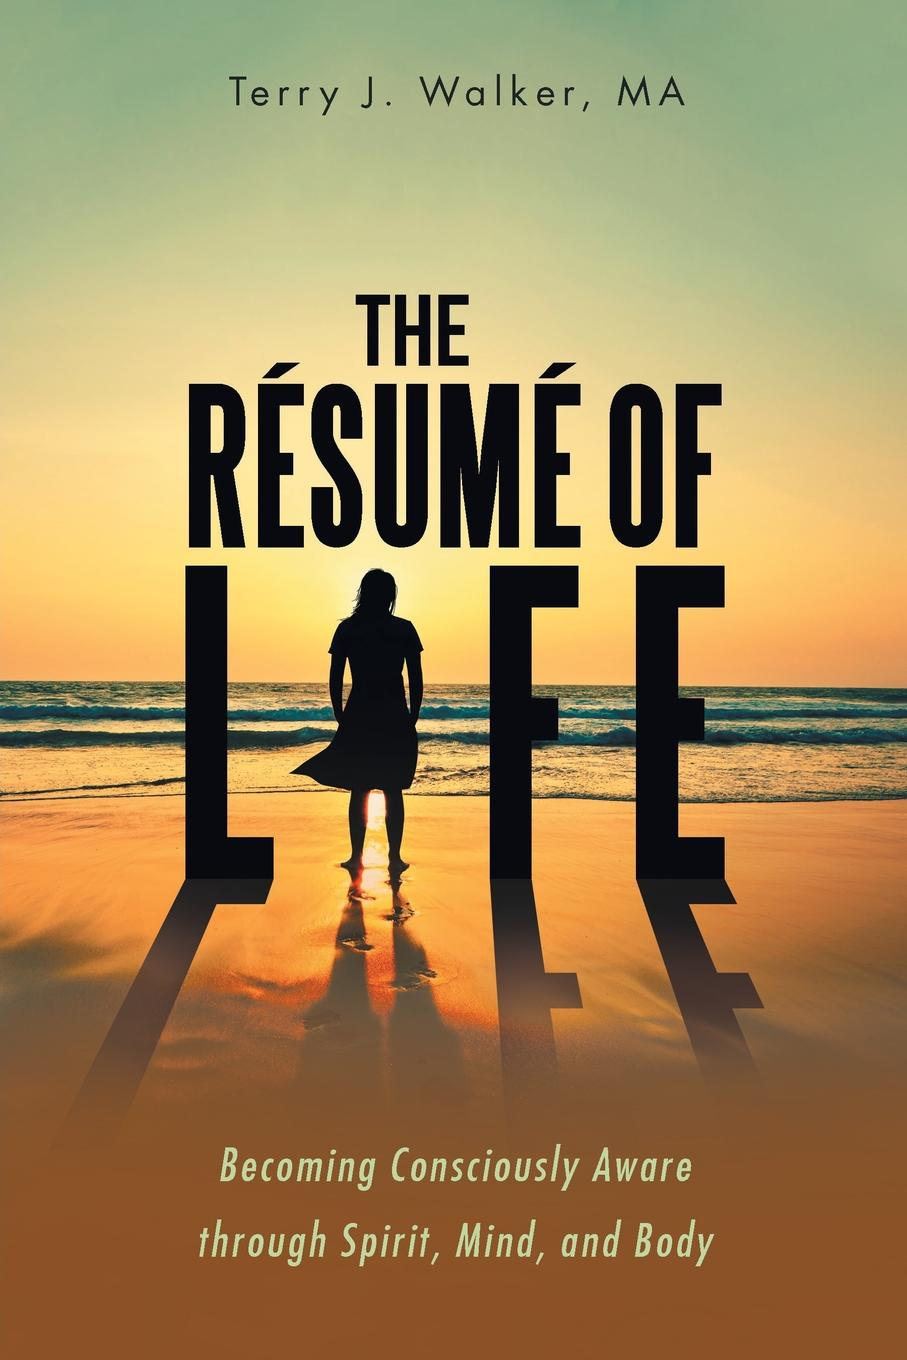 MA Terry J. Walker The Resume of Life. Becoming Consciously Aware through Spirit, Mind, and Body michelle hillier inspired magic your guide to transforming your life with the power of the mind